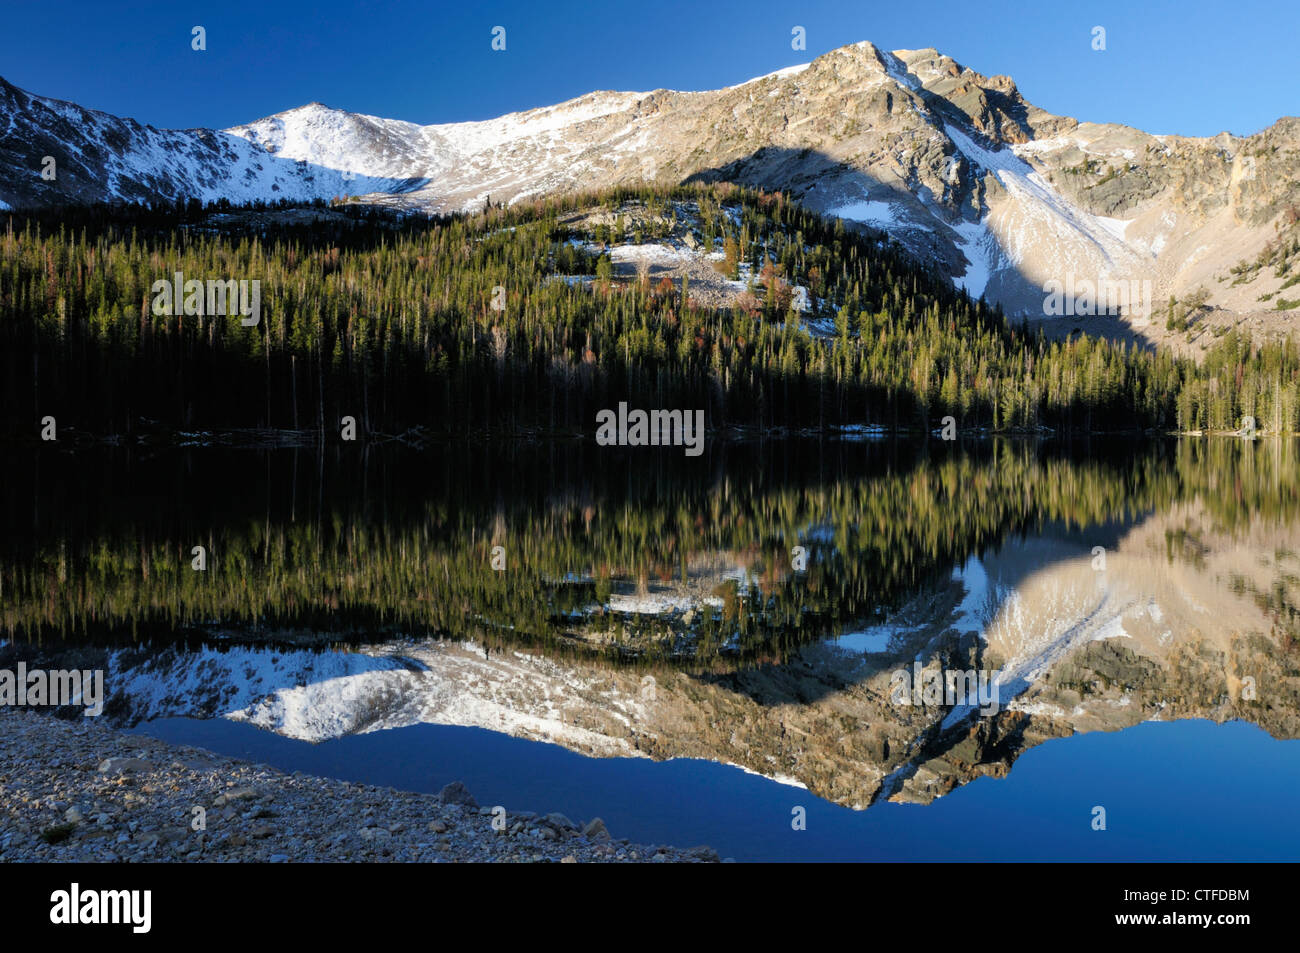 Reflections of trees in Idaho's Mill Lake form odd shape - Stock Image